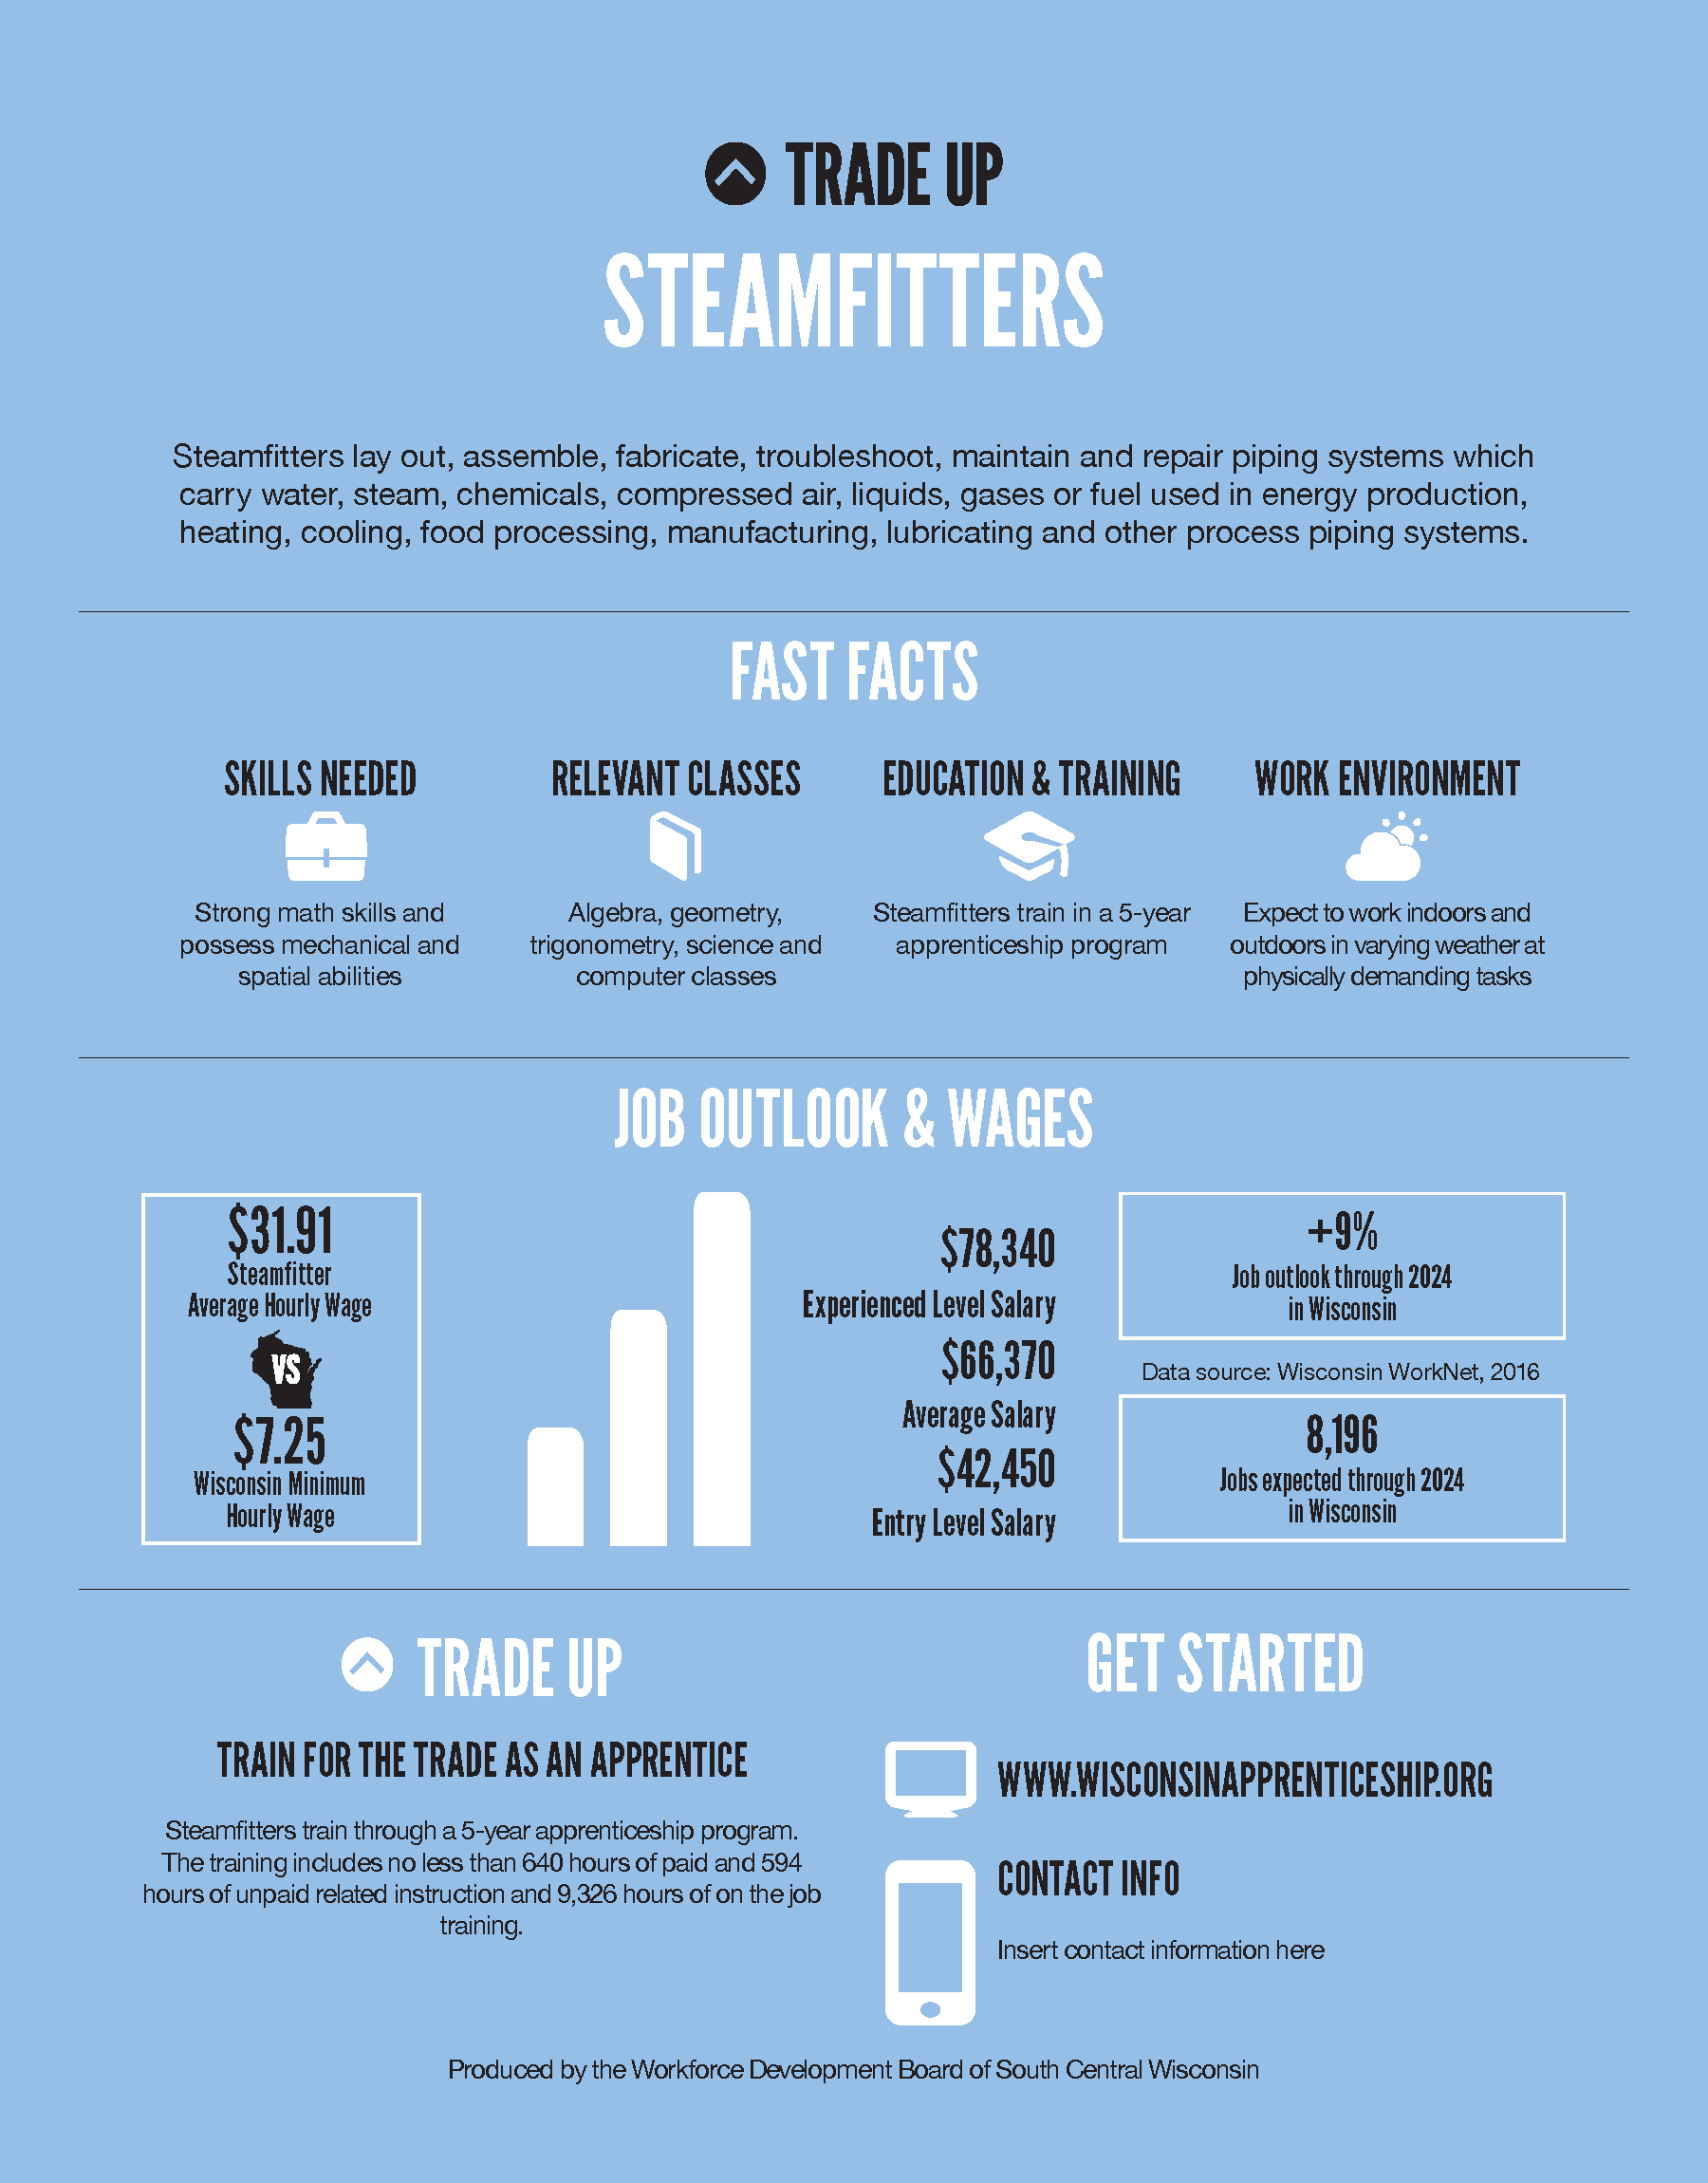 Trade Up poster for Steamfitters